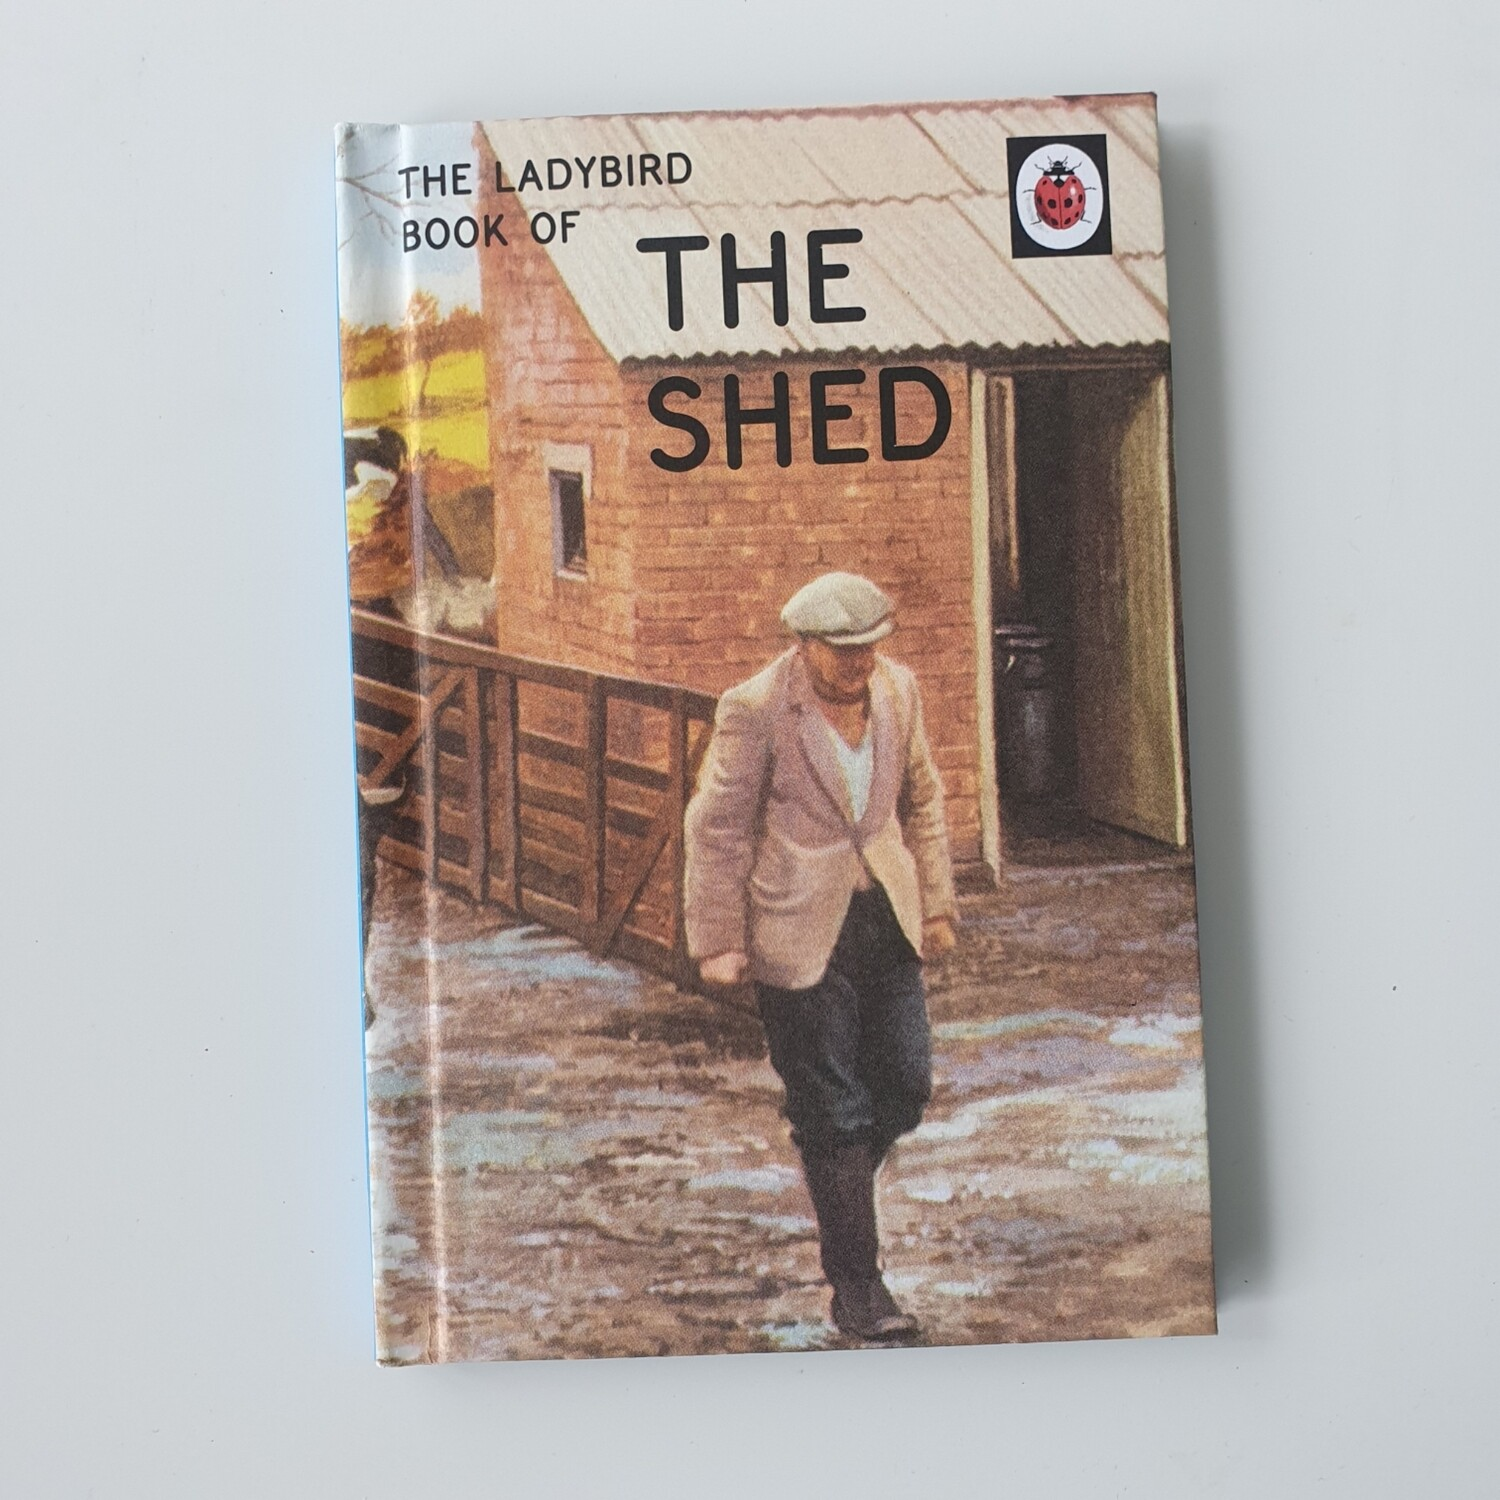 The Shed - Ladybird book